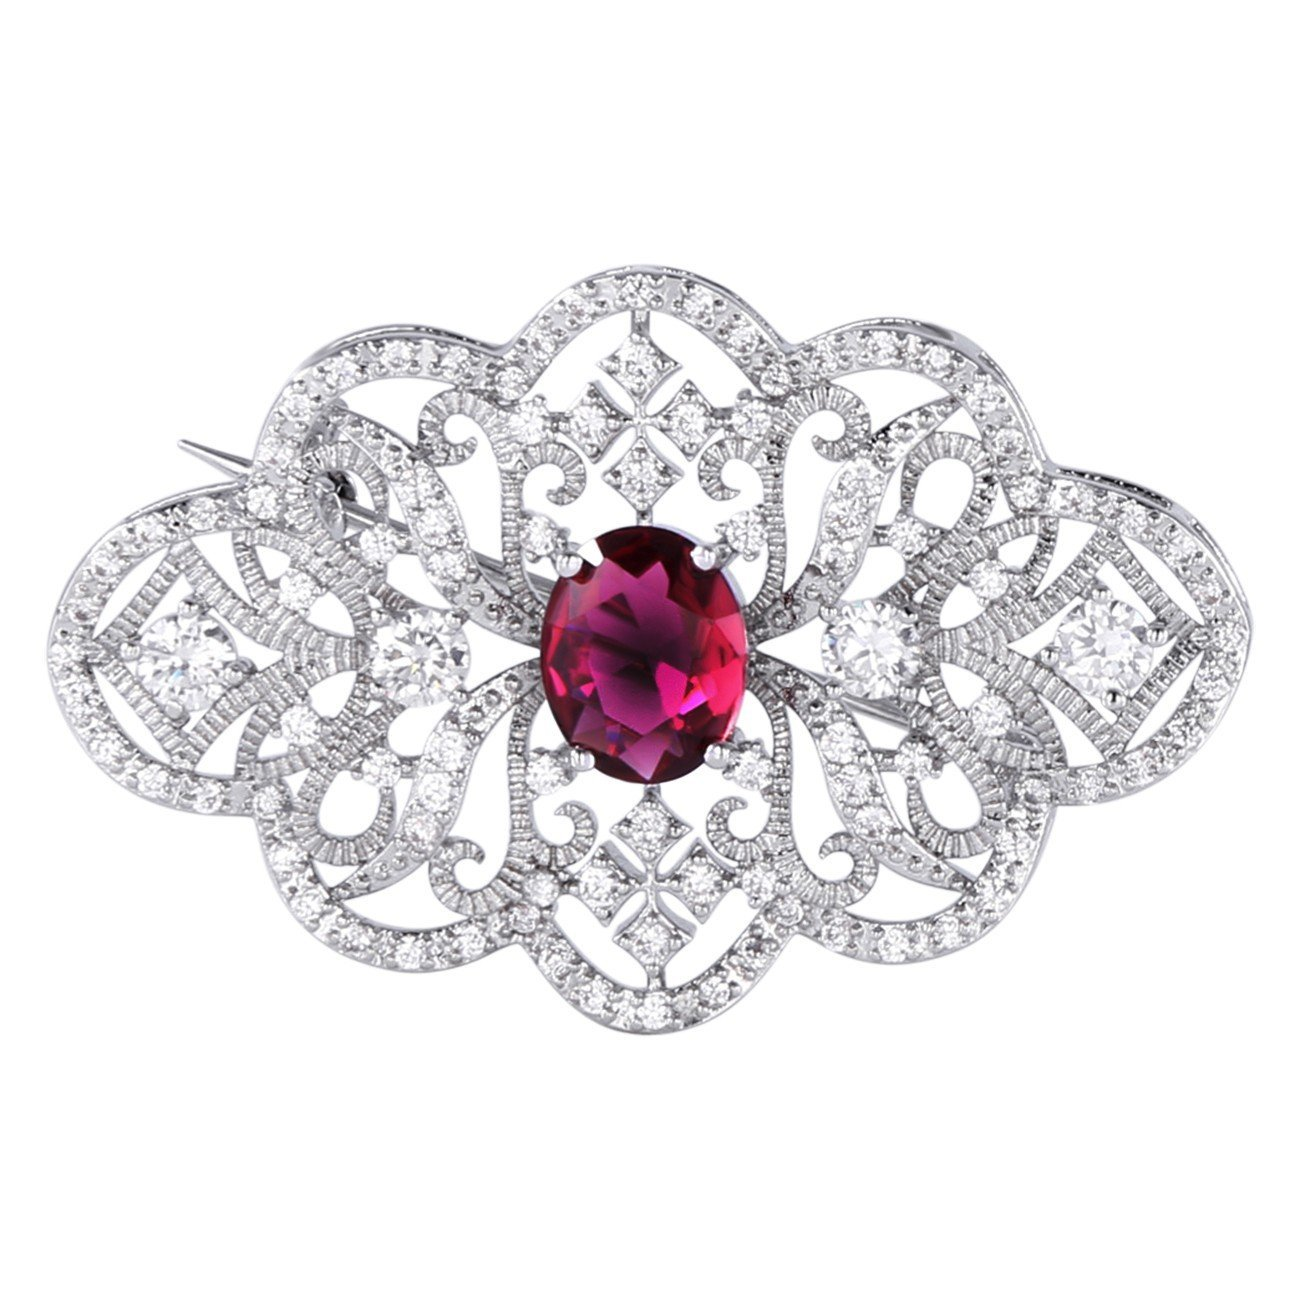 GULICX Victorian Style Cubic Zirconia Brooch Pin Art Deco White Gold Tone  Ruby Color For Women